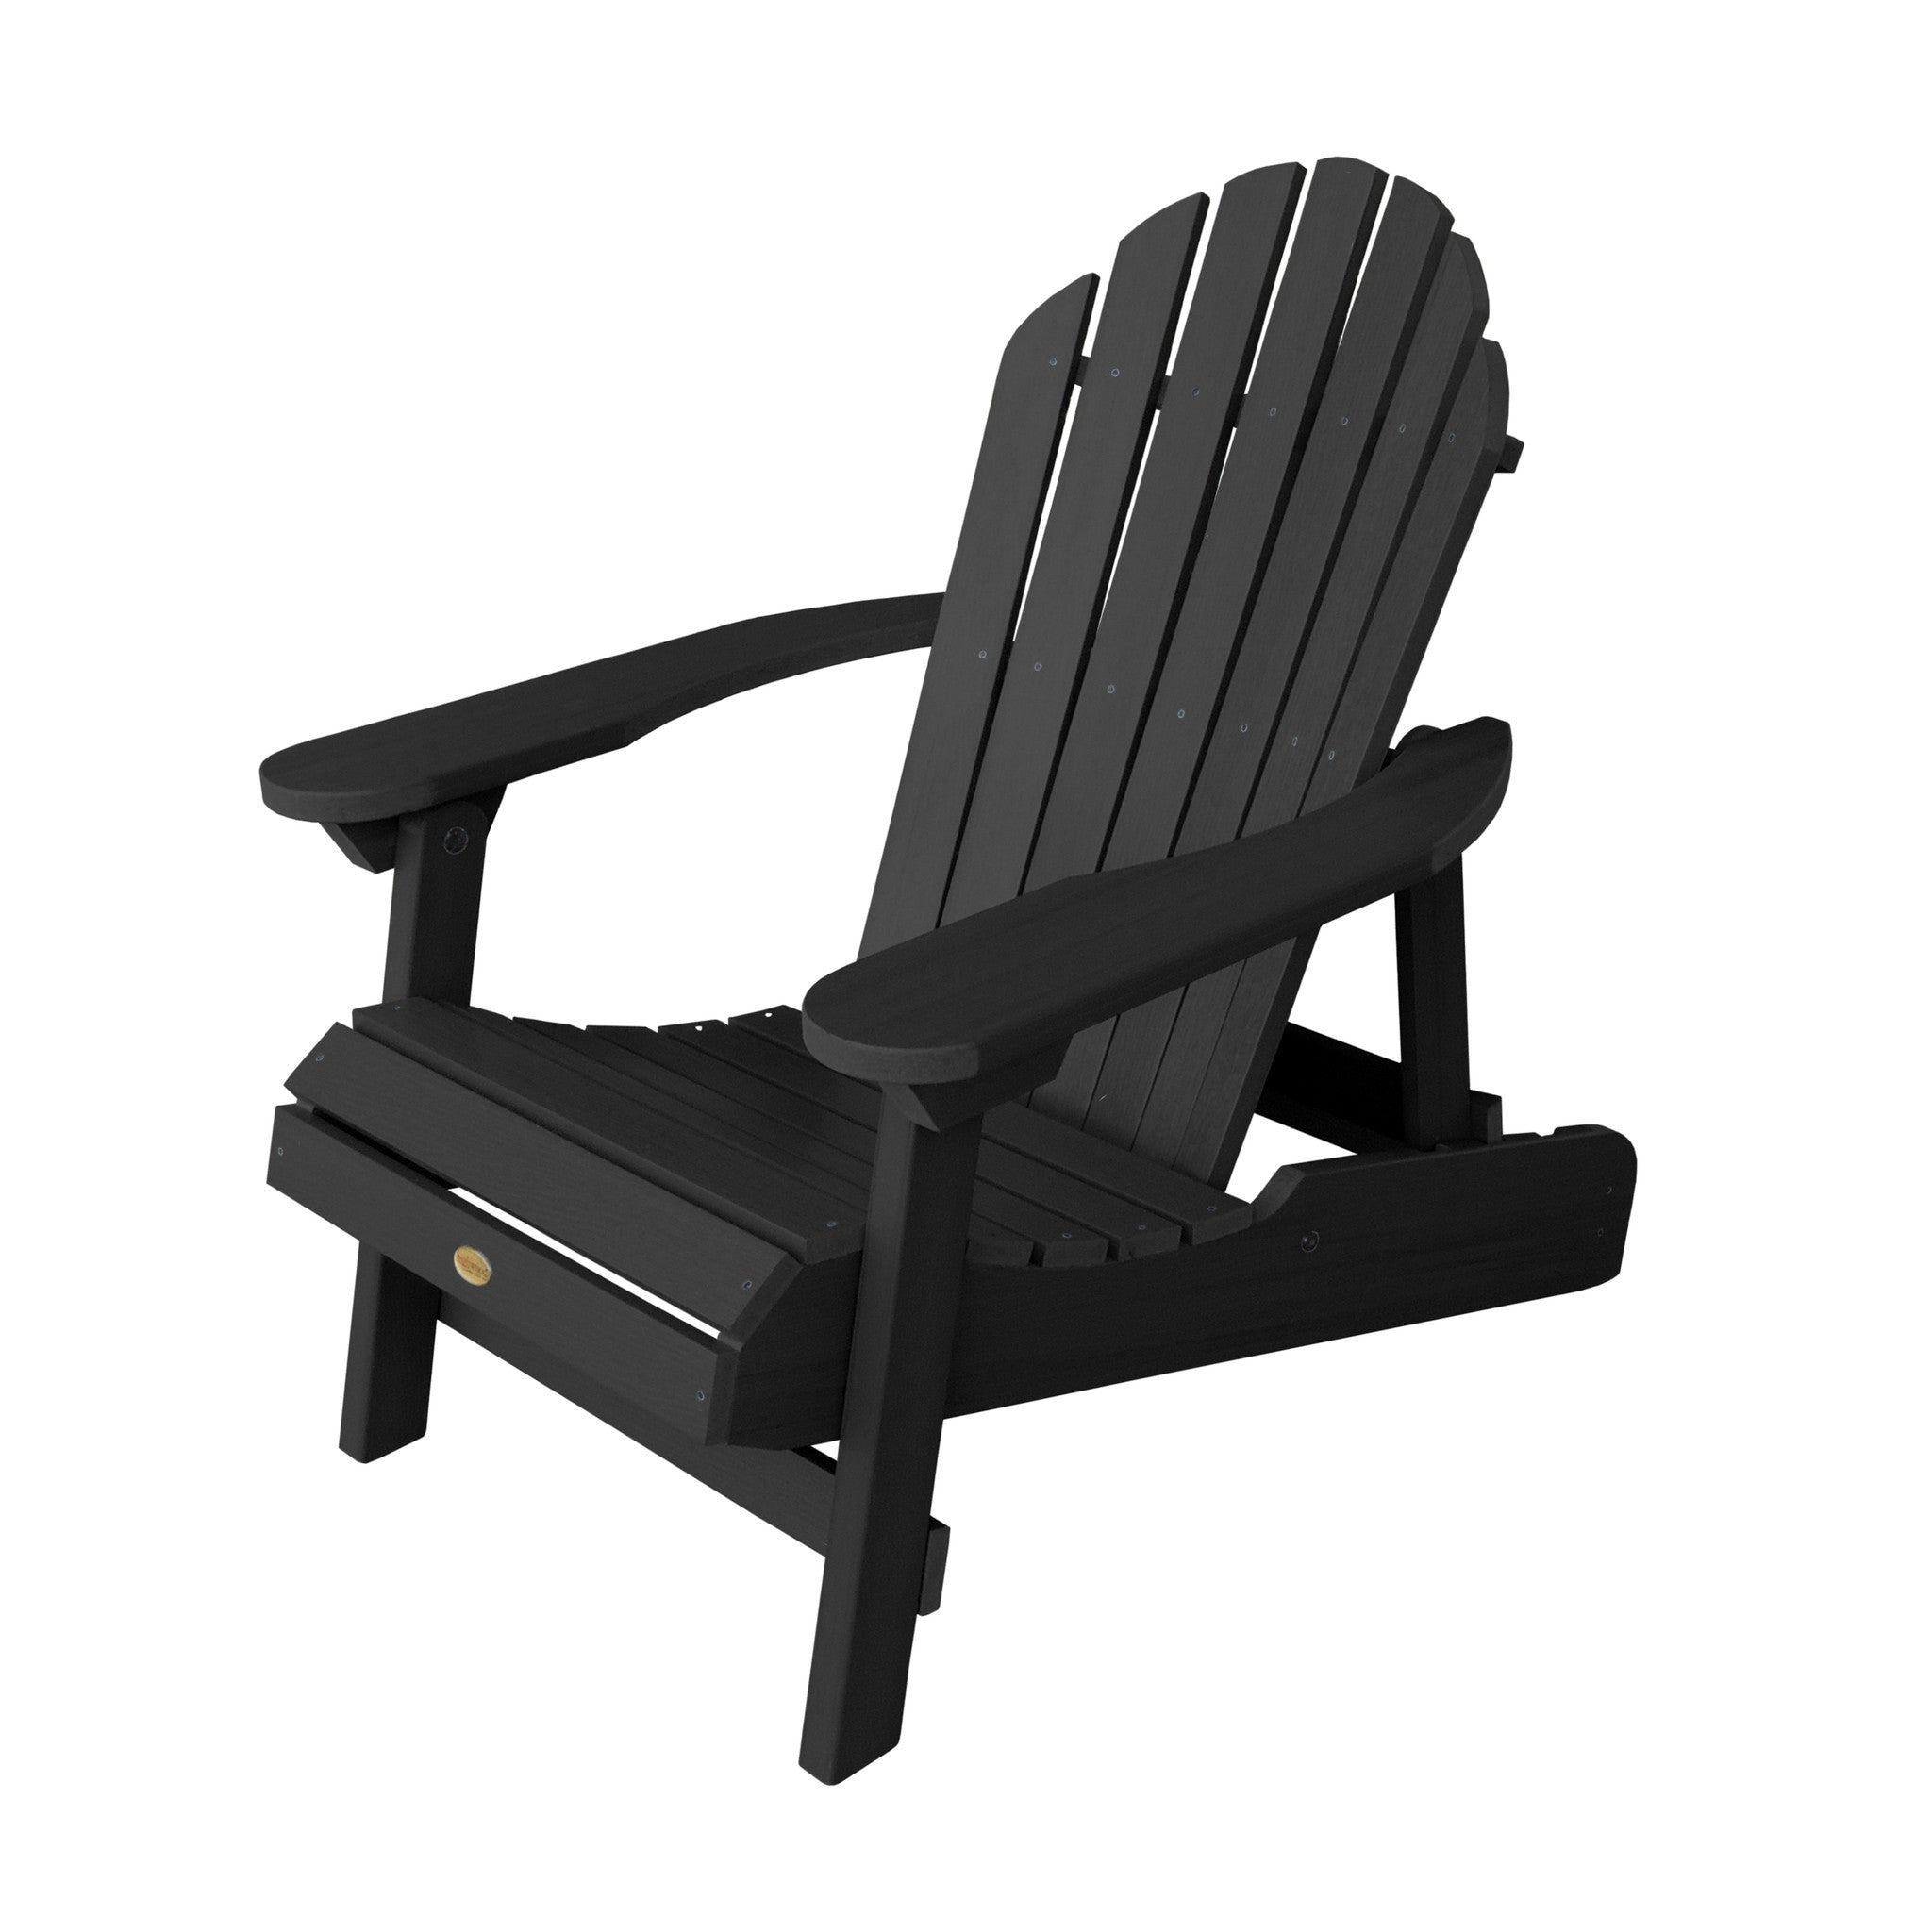 Highwood USA Eco Friendly Hamilton Folding U0026 Reclining Adirondack Chair    Adirondack   Shop Patios ...